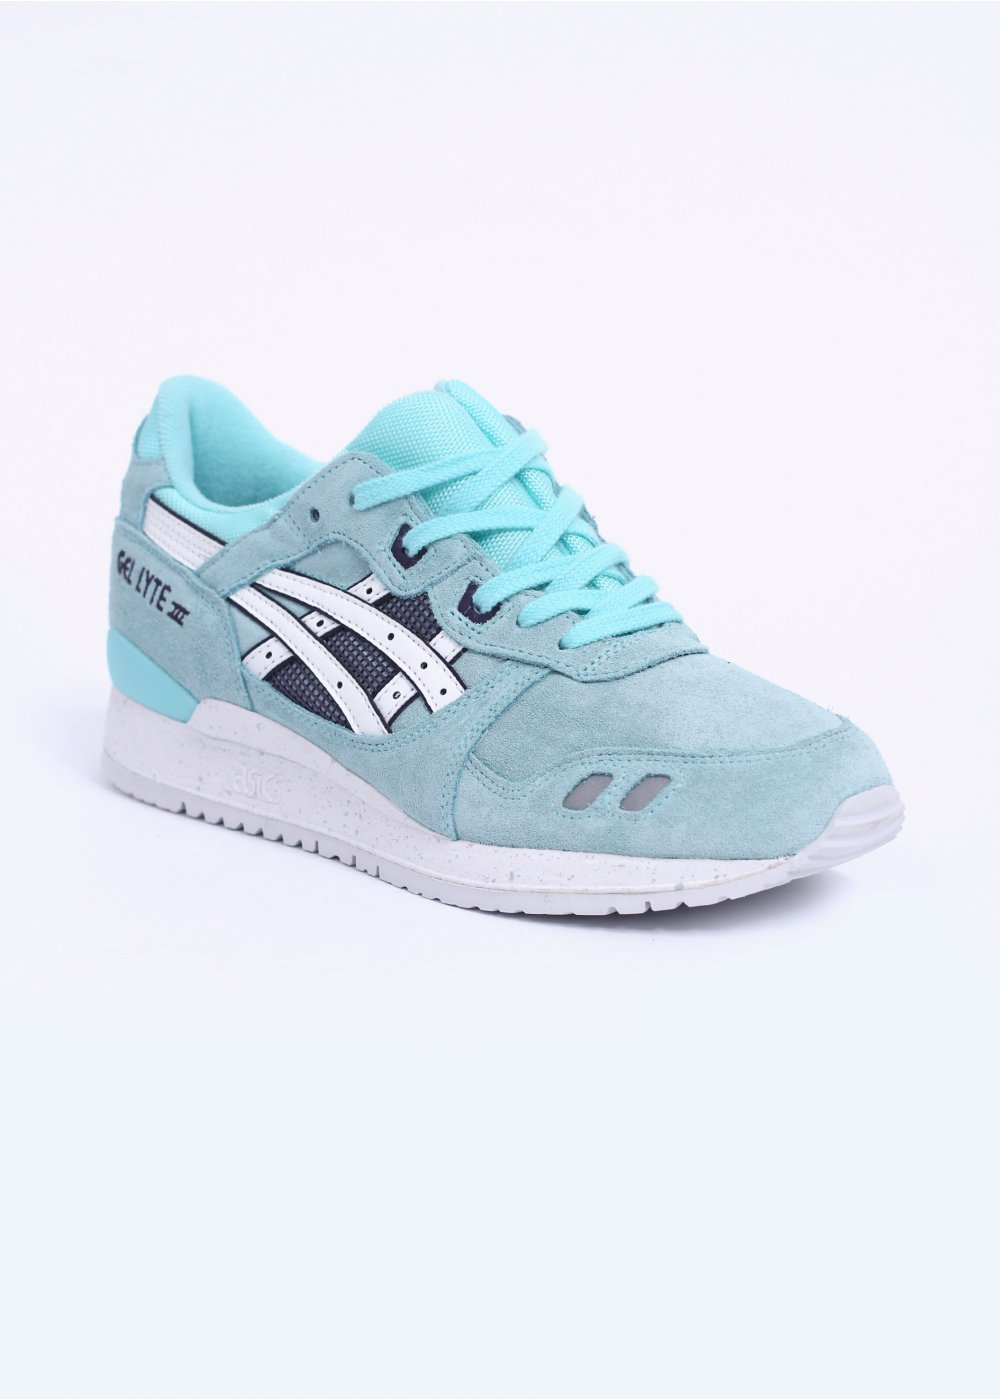 asics gel lyte iii trainers blue white. Black Bedroom Furniture Sets. Home Design Ideas